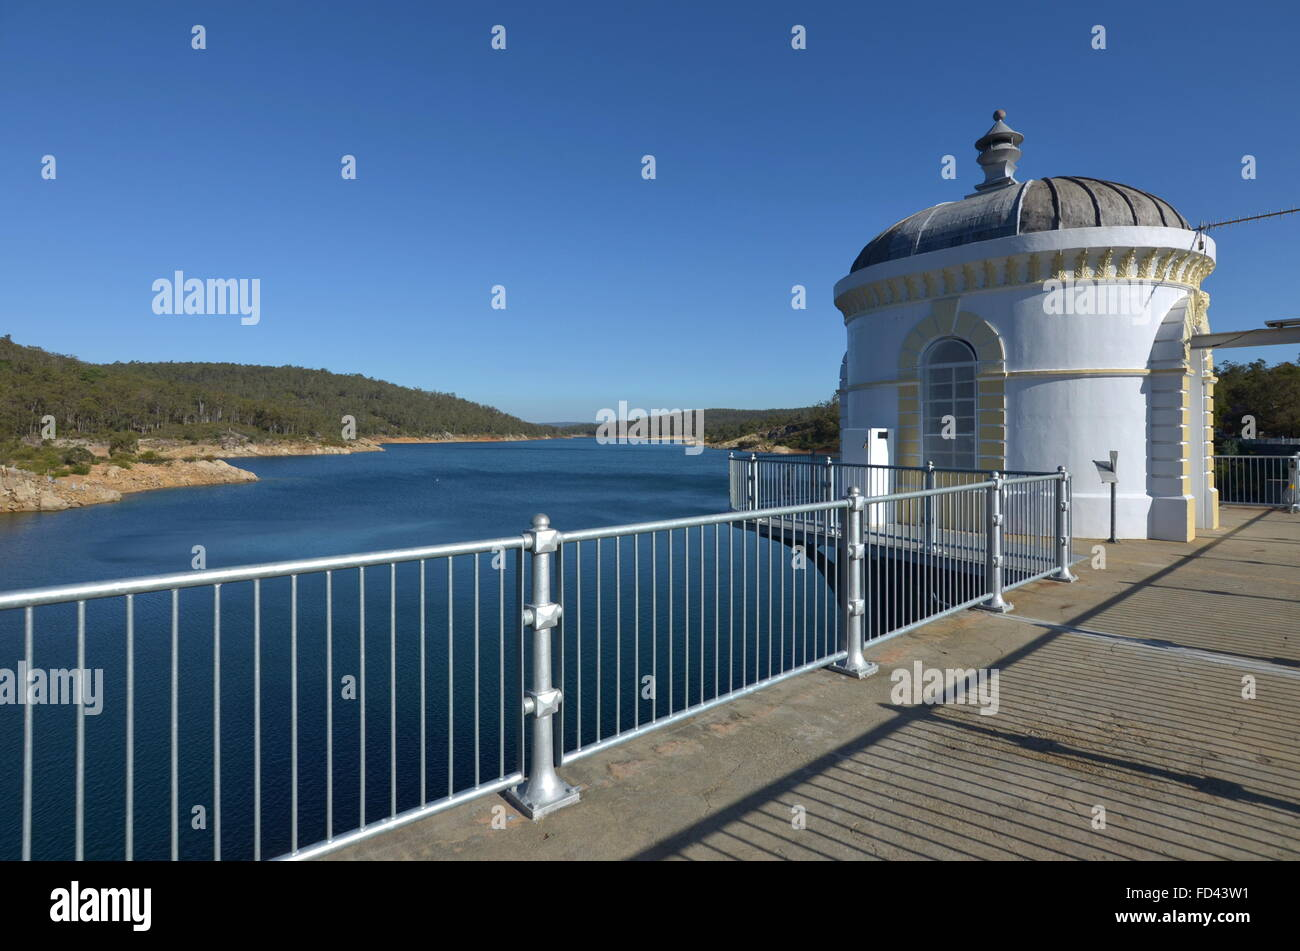 Valve tower and walkway on top of the Mundaring Weir dam, Perth, Western Australia - Stock Image